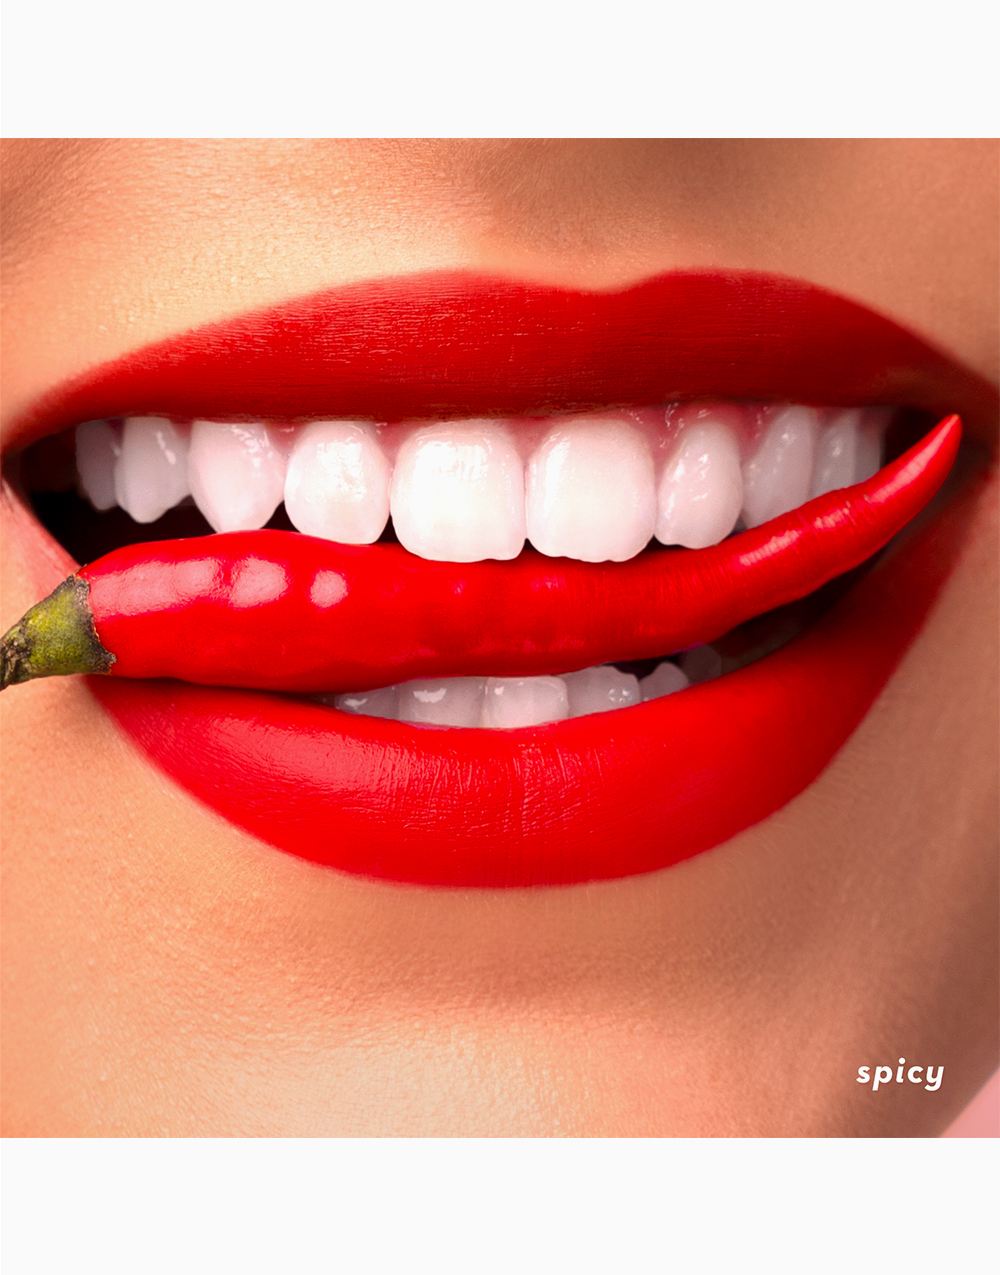 Lip Mallow Mousse by Happy Skin | Spicy